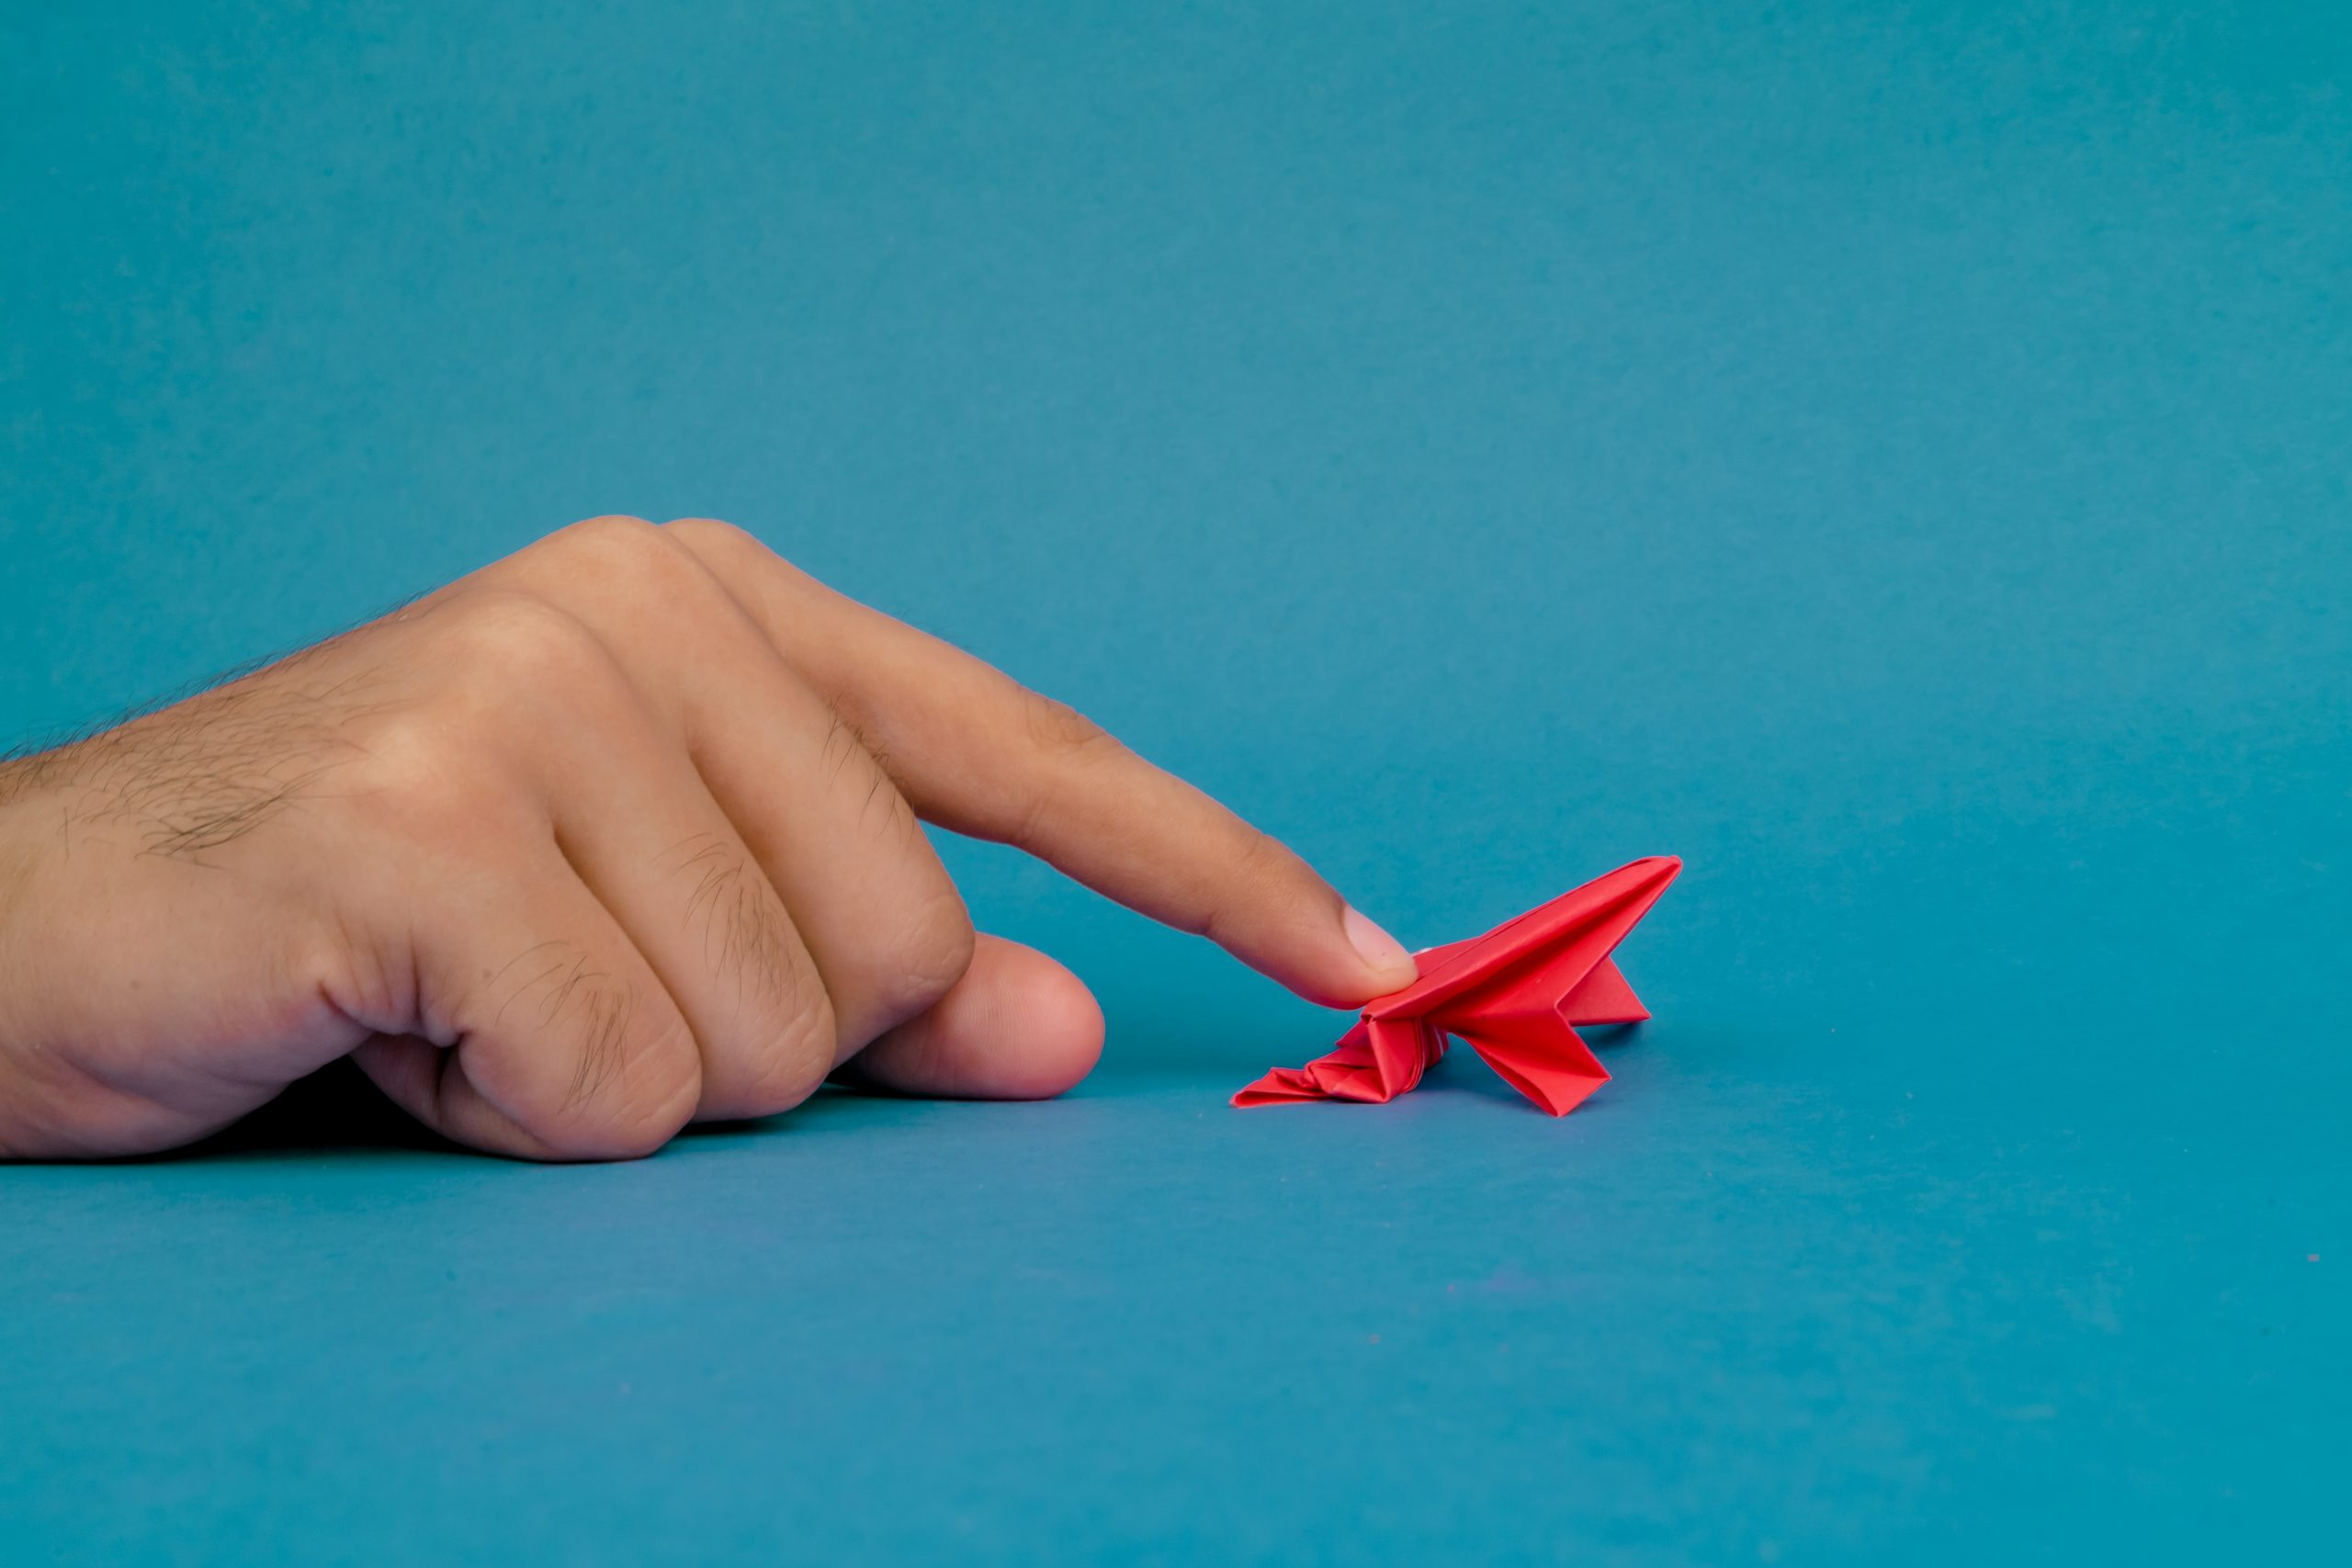 Playing with origami frog